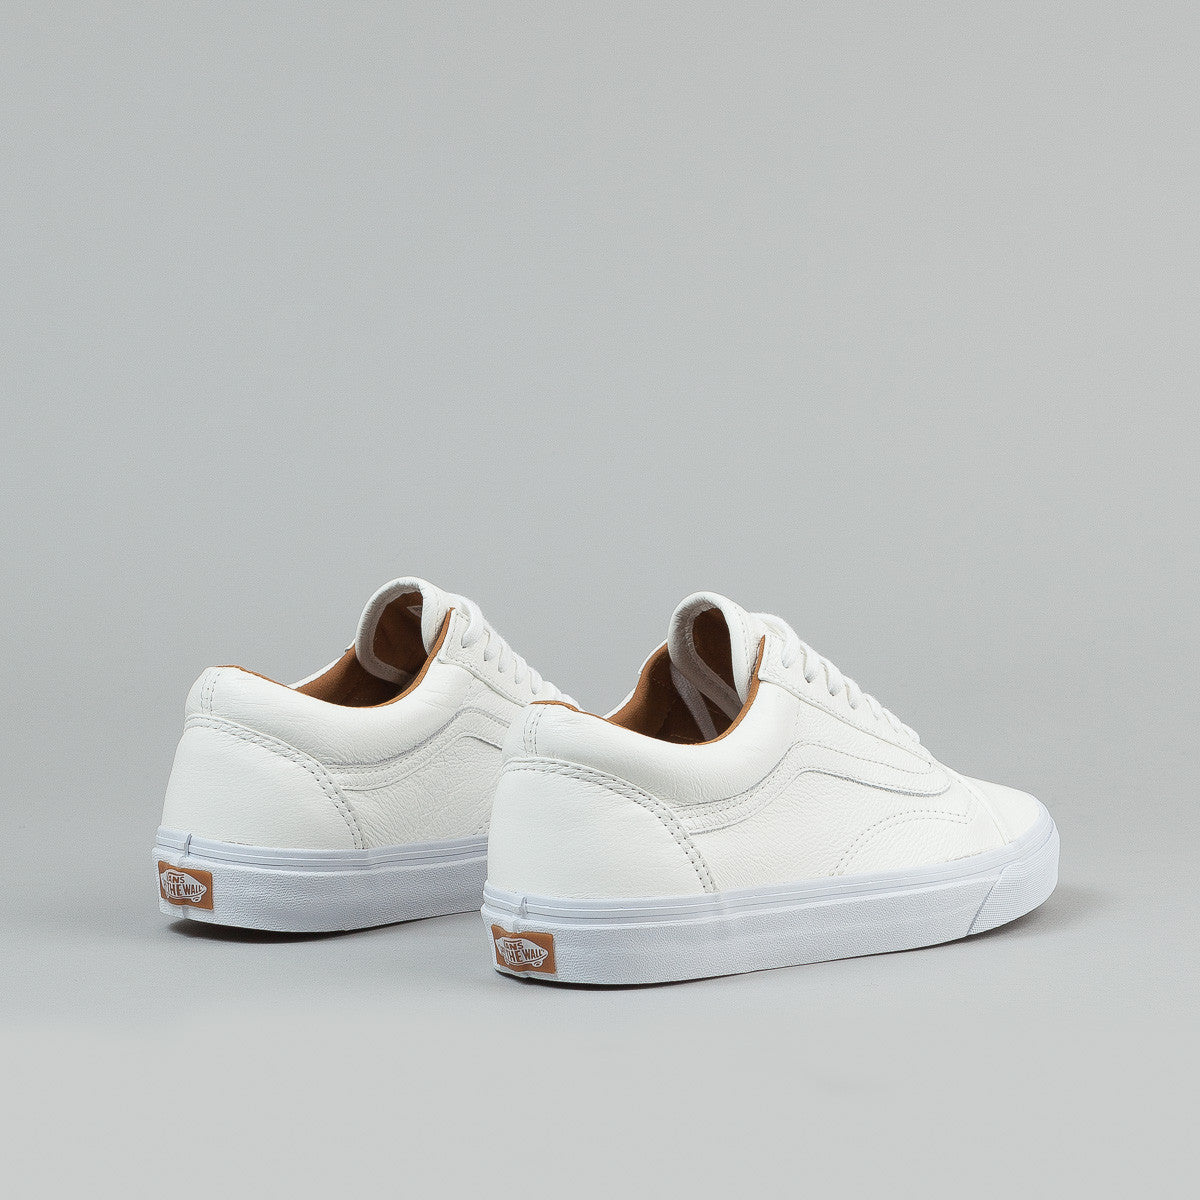 Vans Old Skool Shoes (Premium Leather) - White